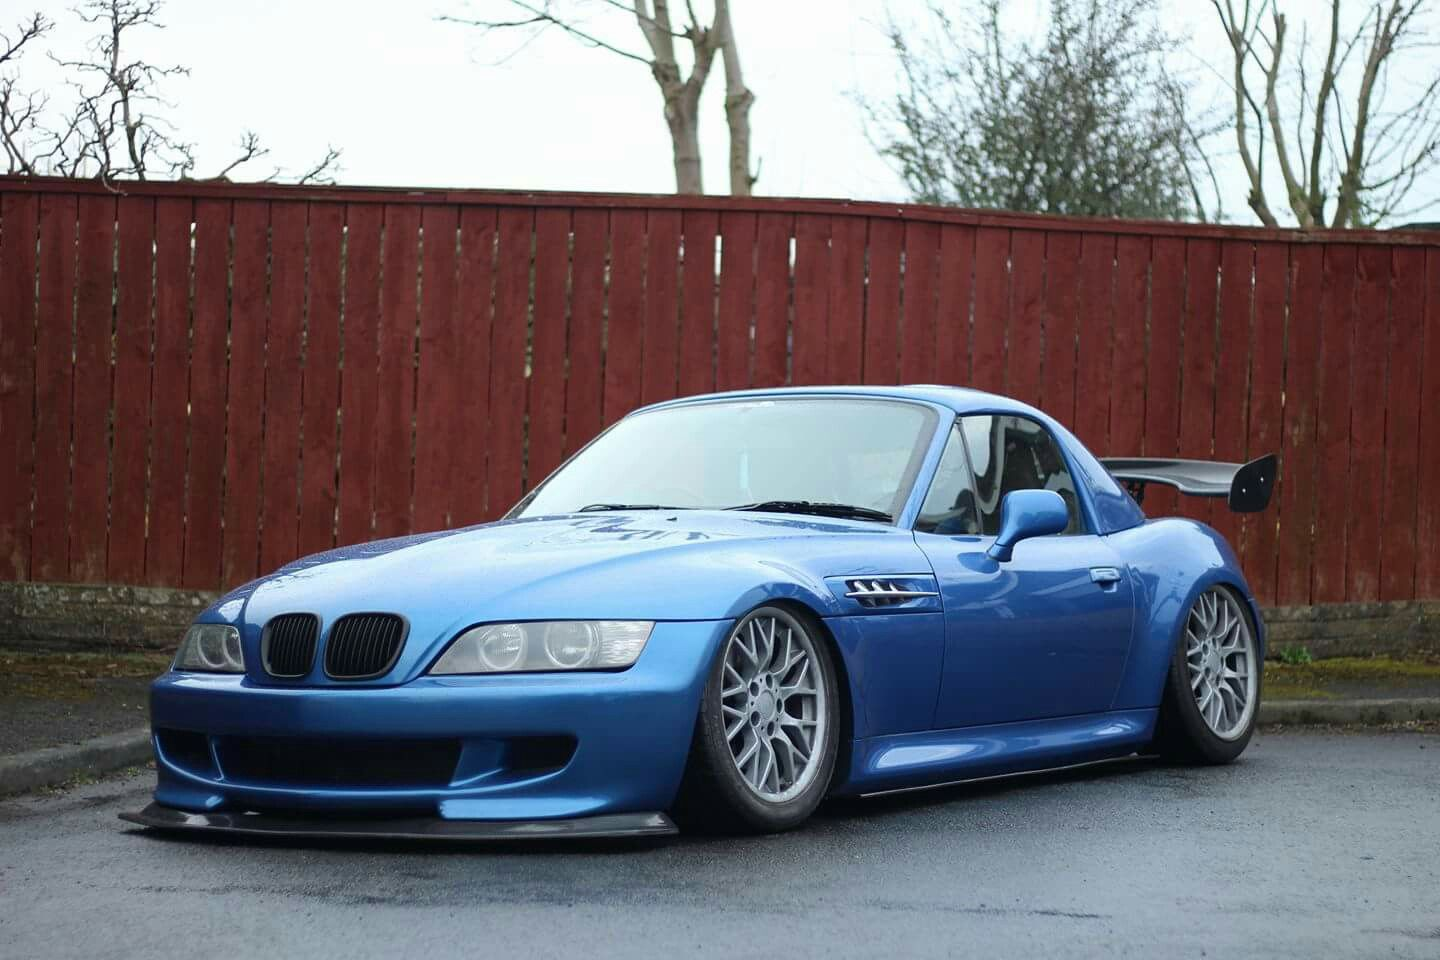 hight resolution of bmw z3 m roadster blue slammed